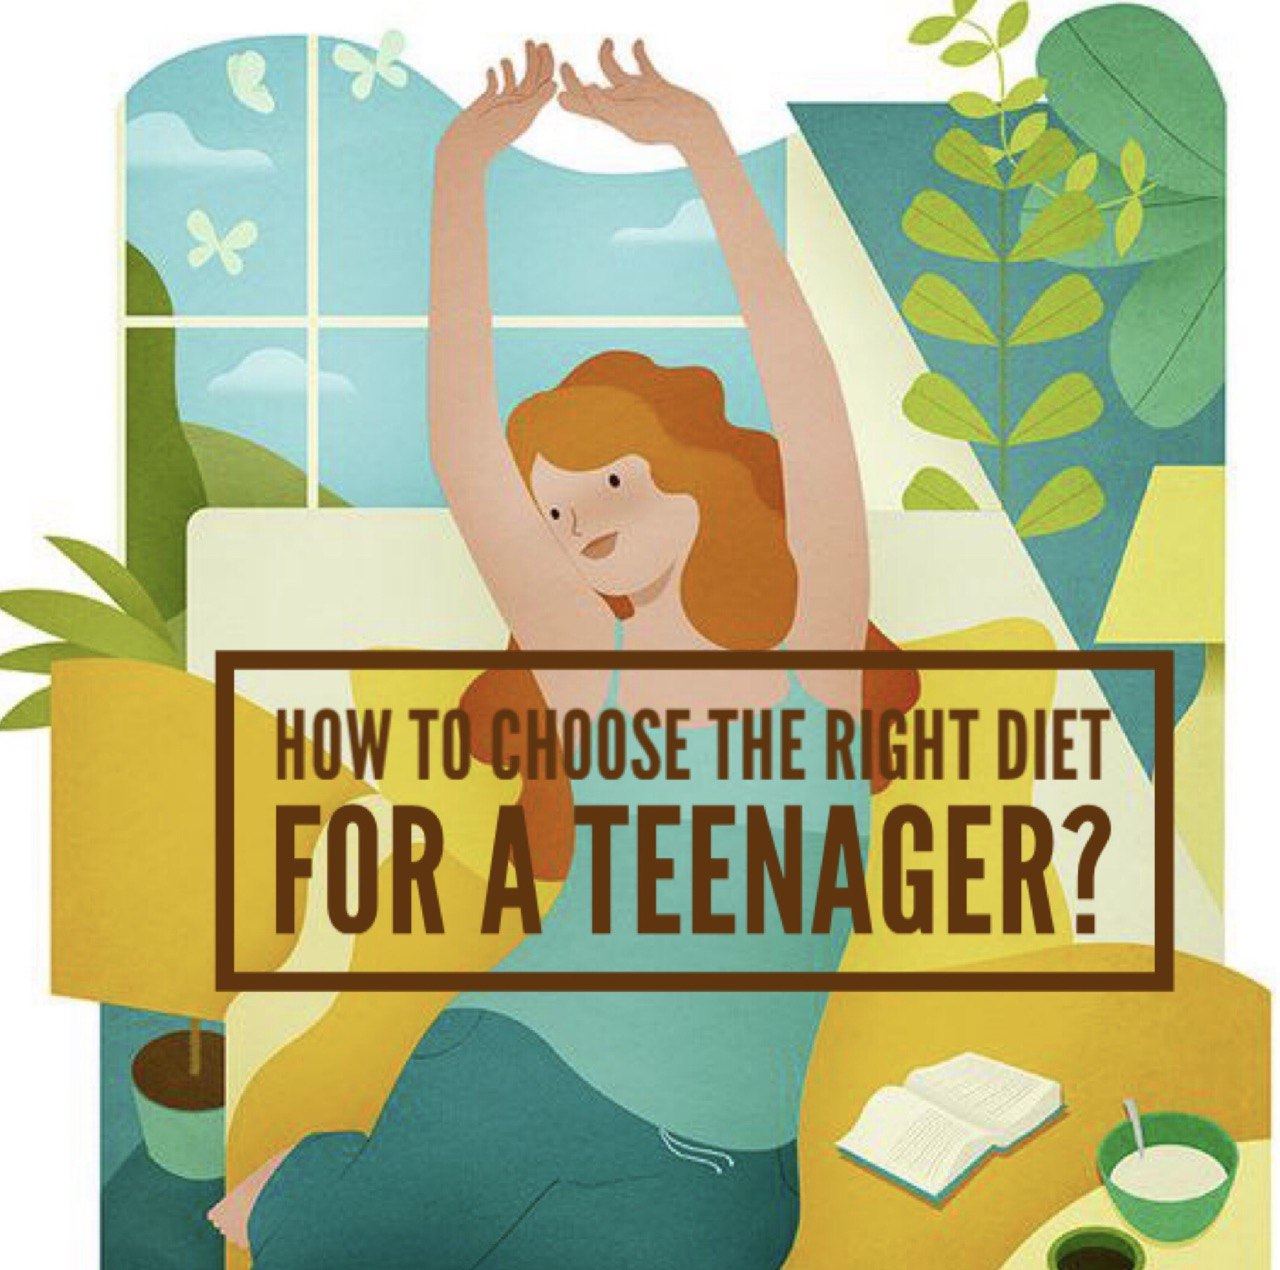 How to choose the right diet for a teenager?